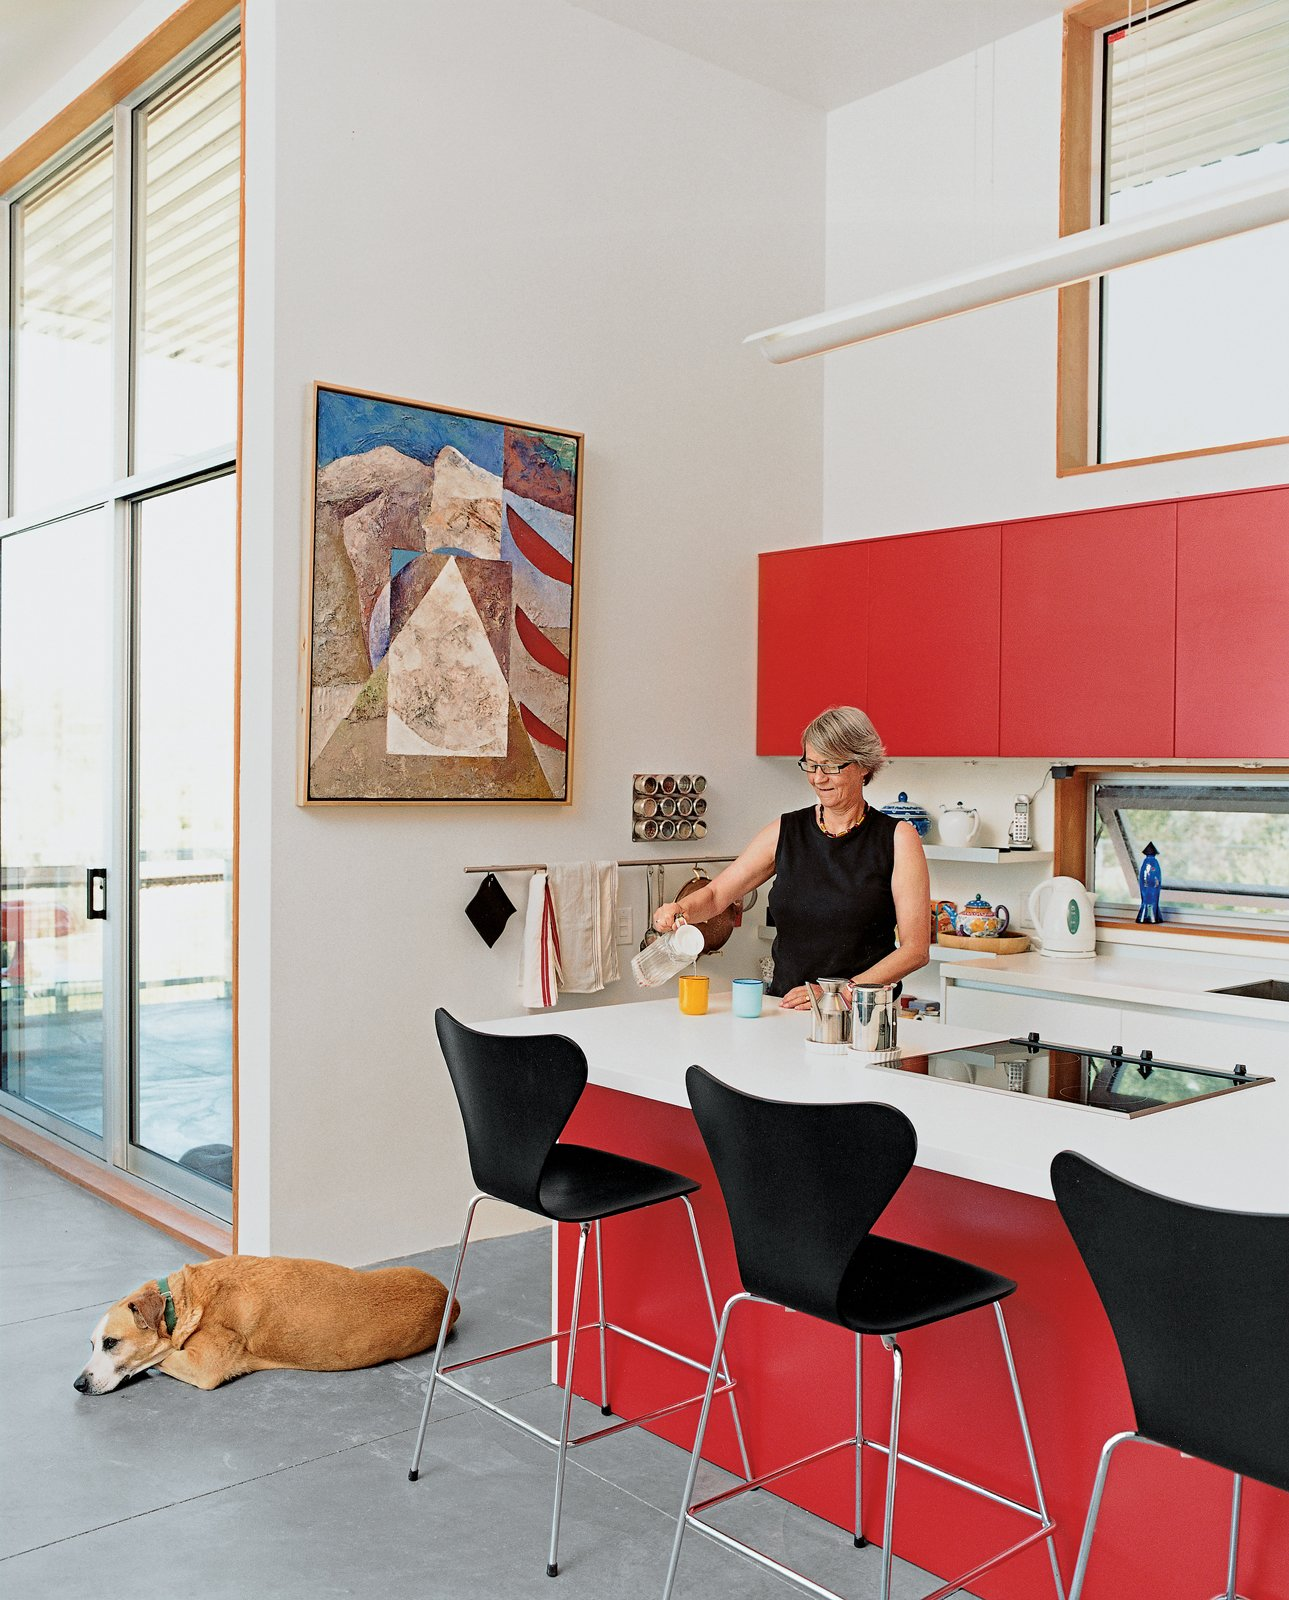 #kitchens #indoor #inside #interior #modern #midcentury #minimal #function #red #cabinets #island #stools #color #dog #Varenna #NewMexico